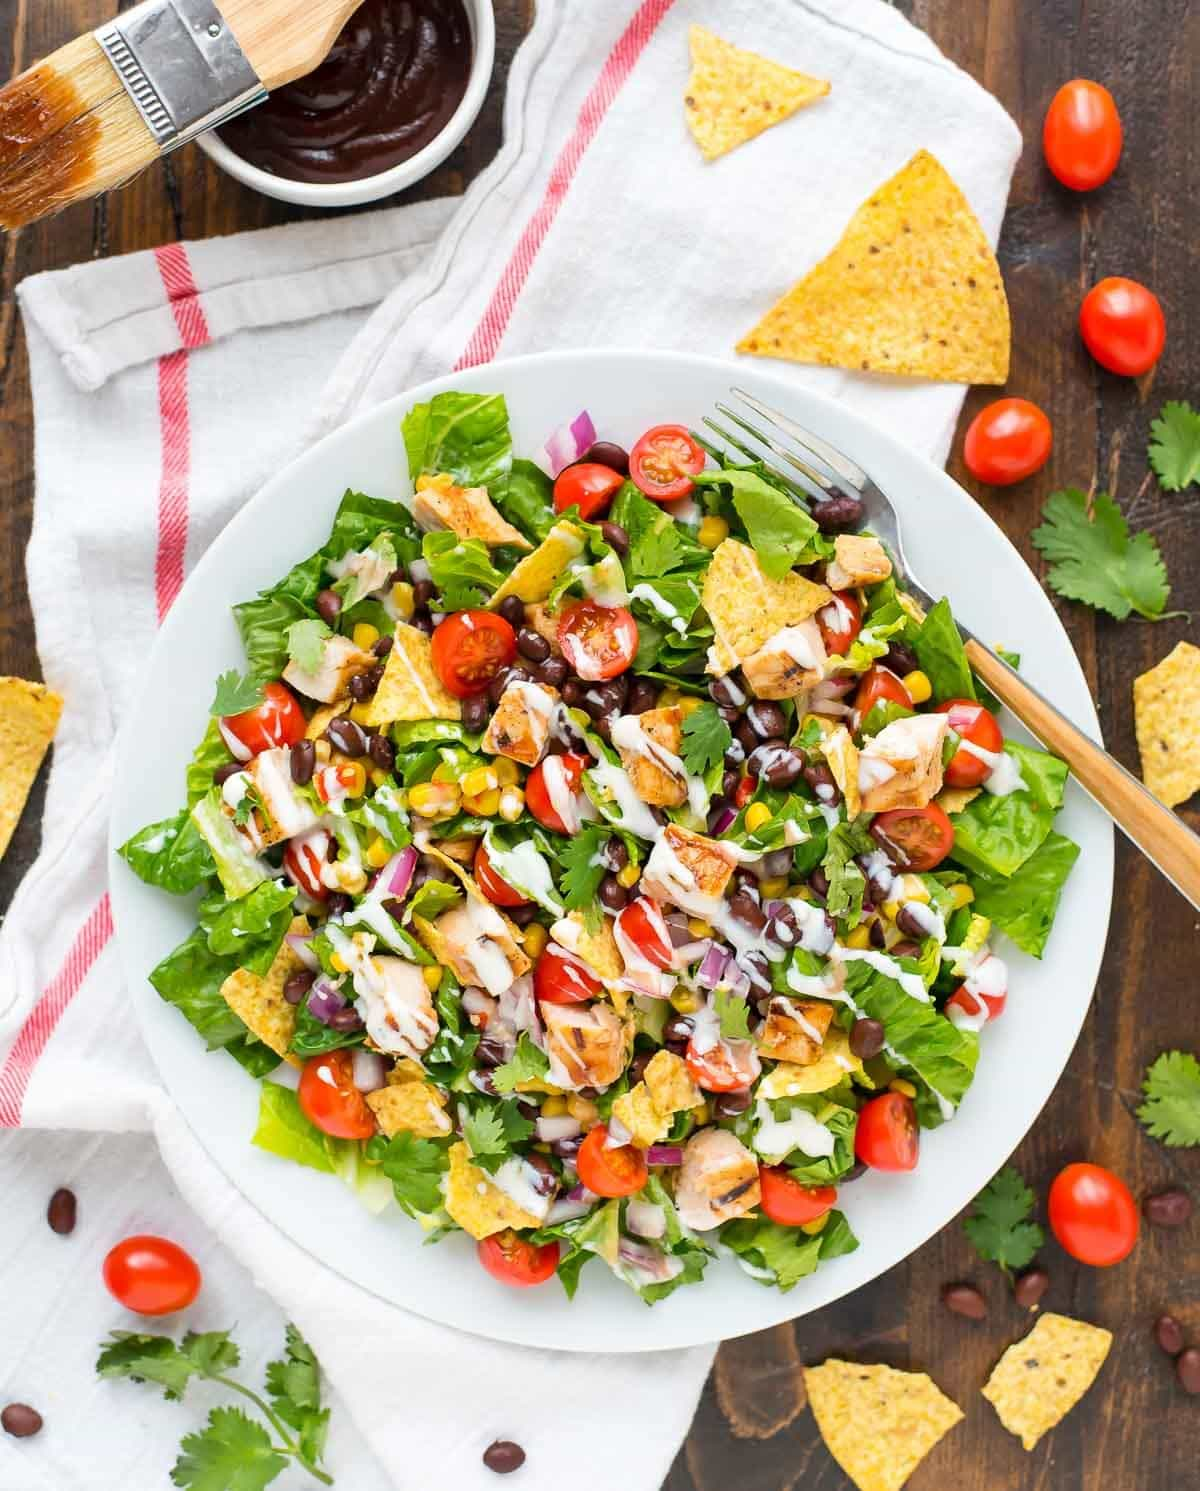 Copycat Panera BBQ Chicken Salad recipe — This easy, healthy salad comes together so quickly and is a family favorite! With creamy ranch, crunchy tortilla chips, and lots of fresh veggies. The perfect summer meal. @wellplated